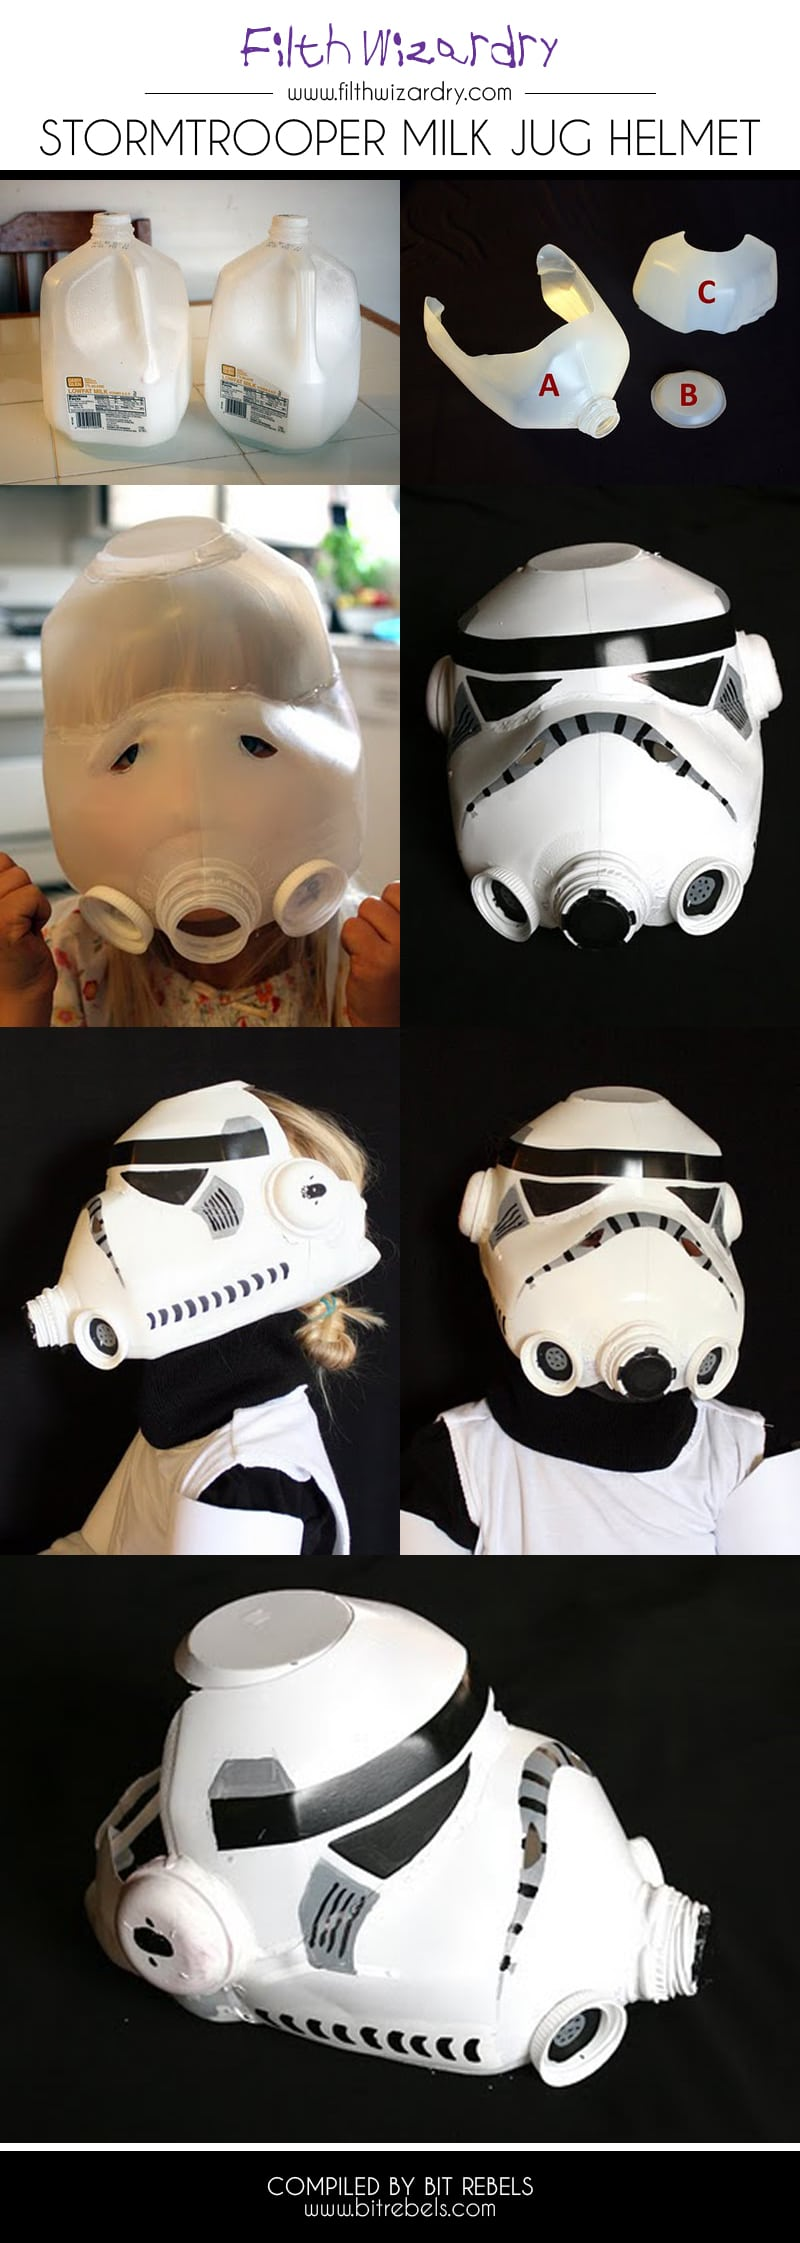 stormtrooper-helmet-milk-jug-project